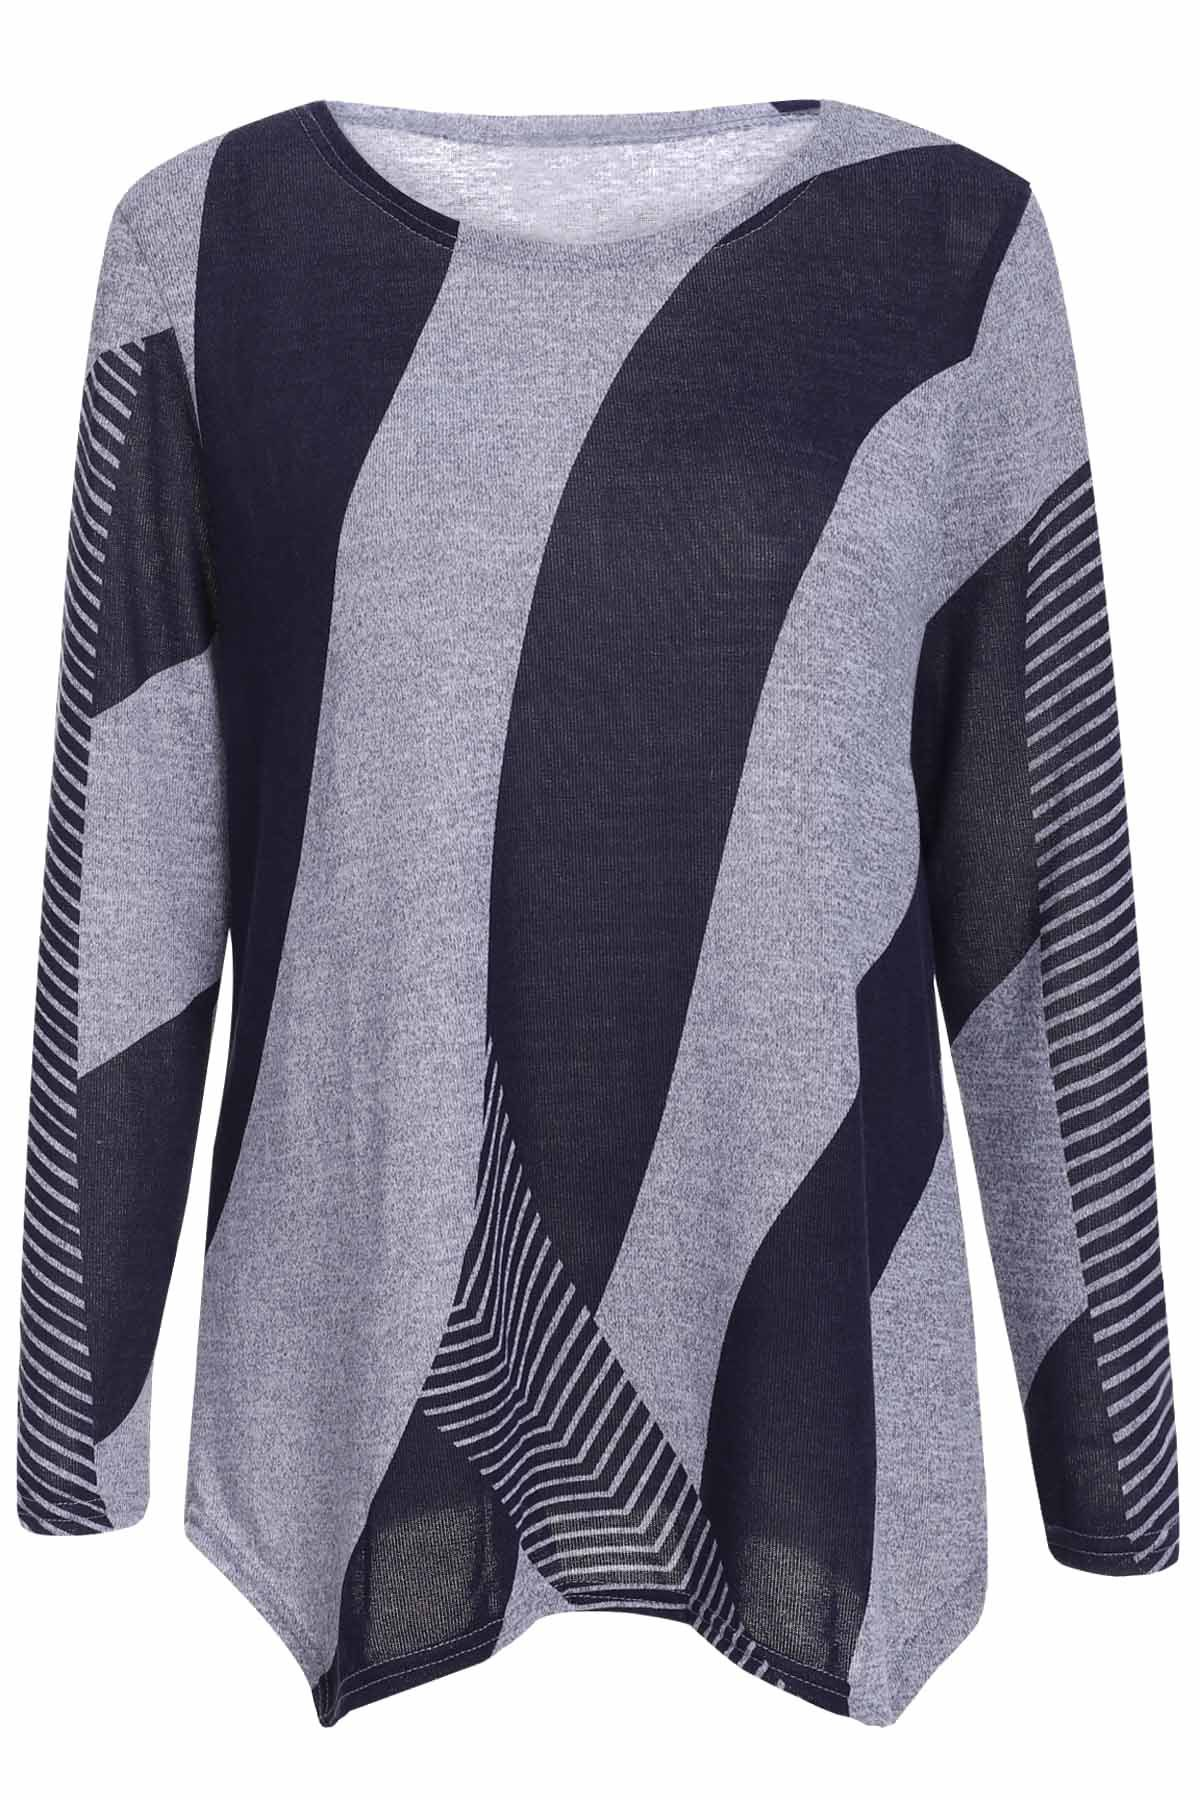 Stylish Women's Scoop Neck Long Sleeves Geometric Printed Irregular Hem T-Shirt - BLUE ONE SIZE